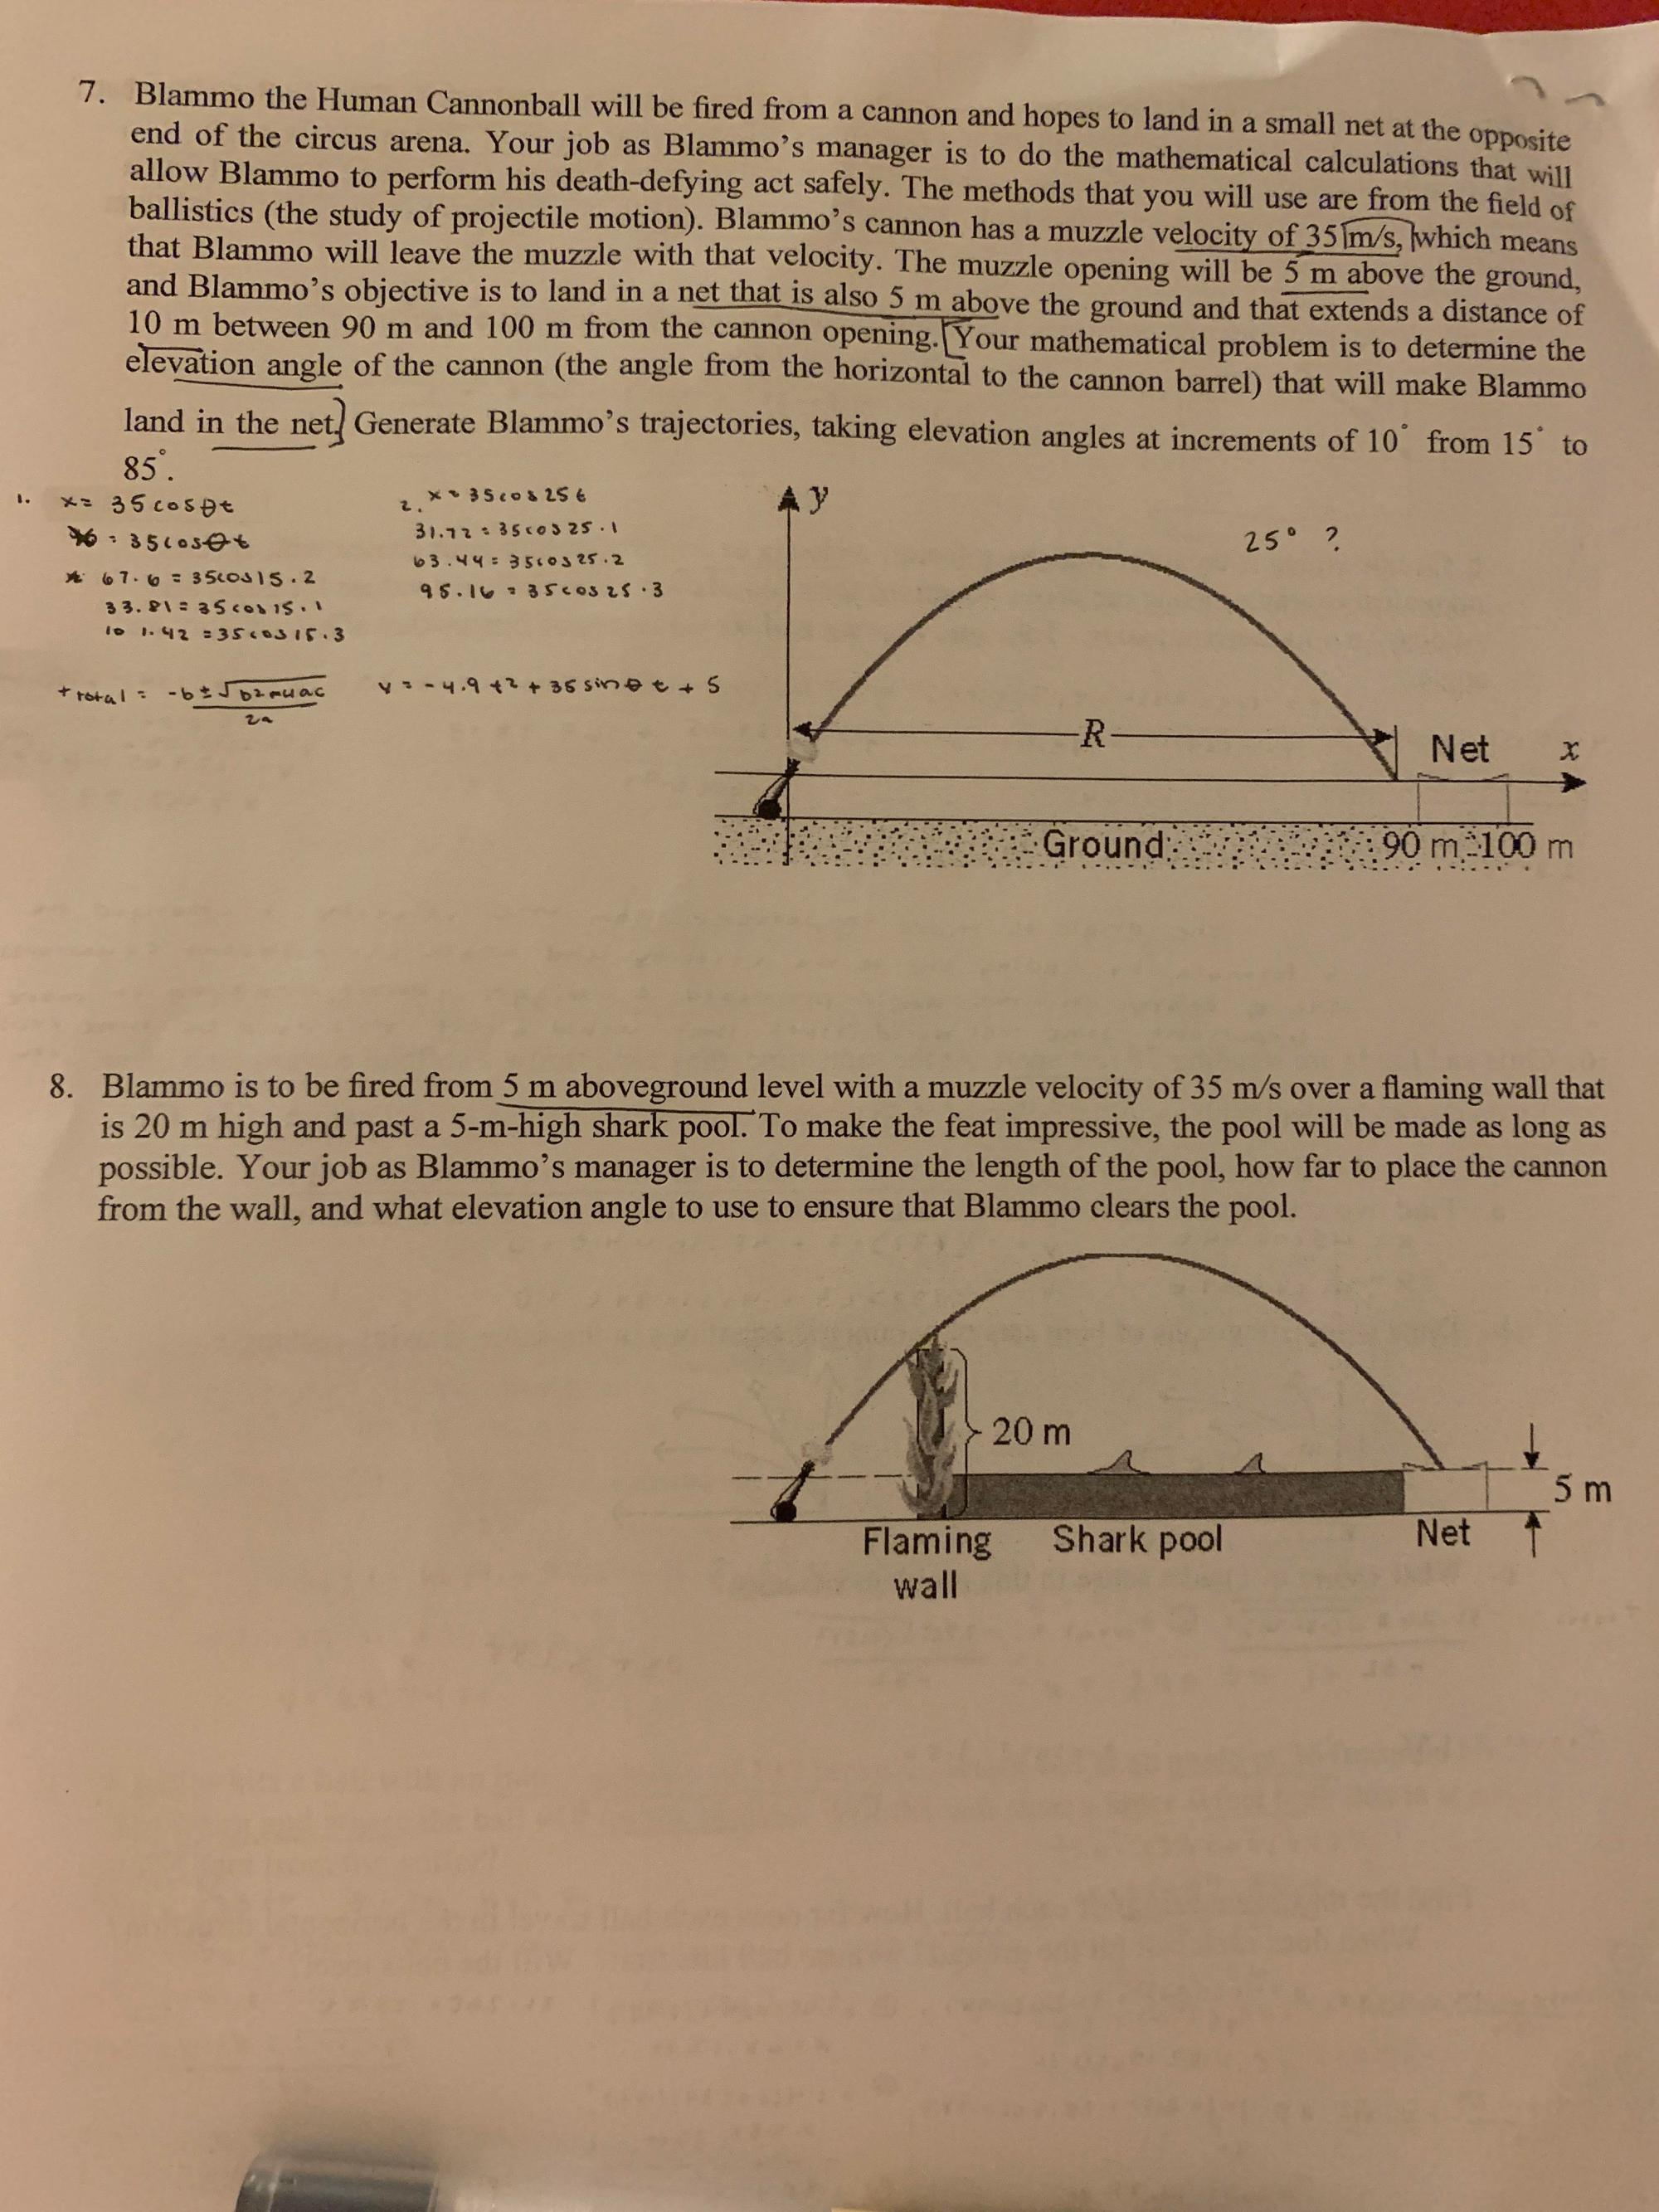 hight resolution of Grade 10 Precalc How to solve this Parametric Equation Word Problem? I'm  stumped on the process (ex. I don't understand what I'm supposed to be  finding...Do I guess and check? or is